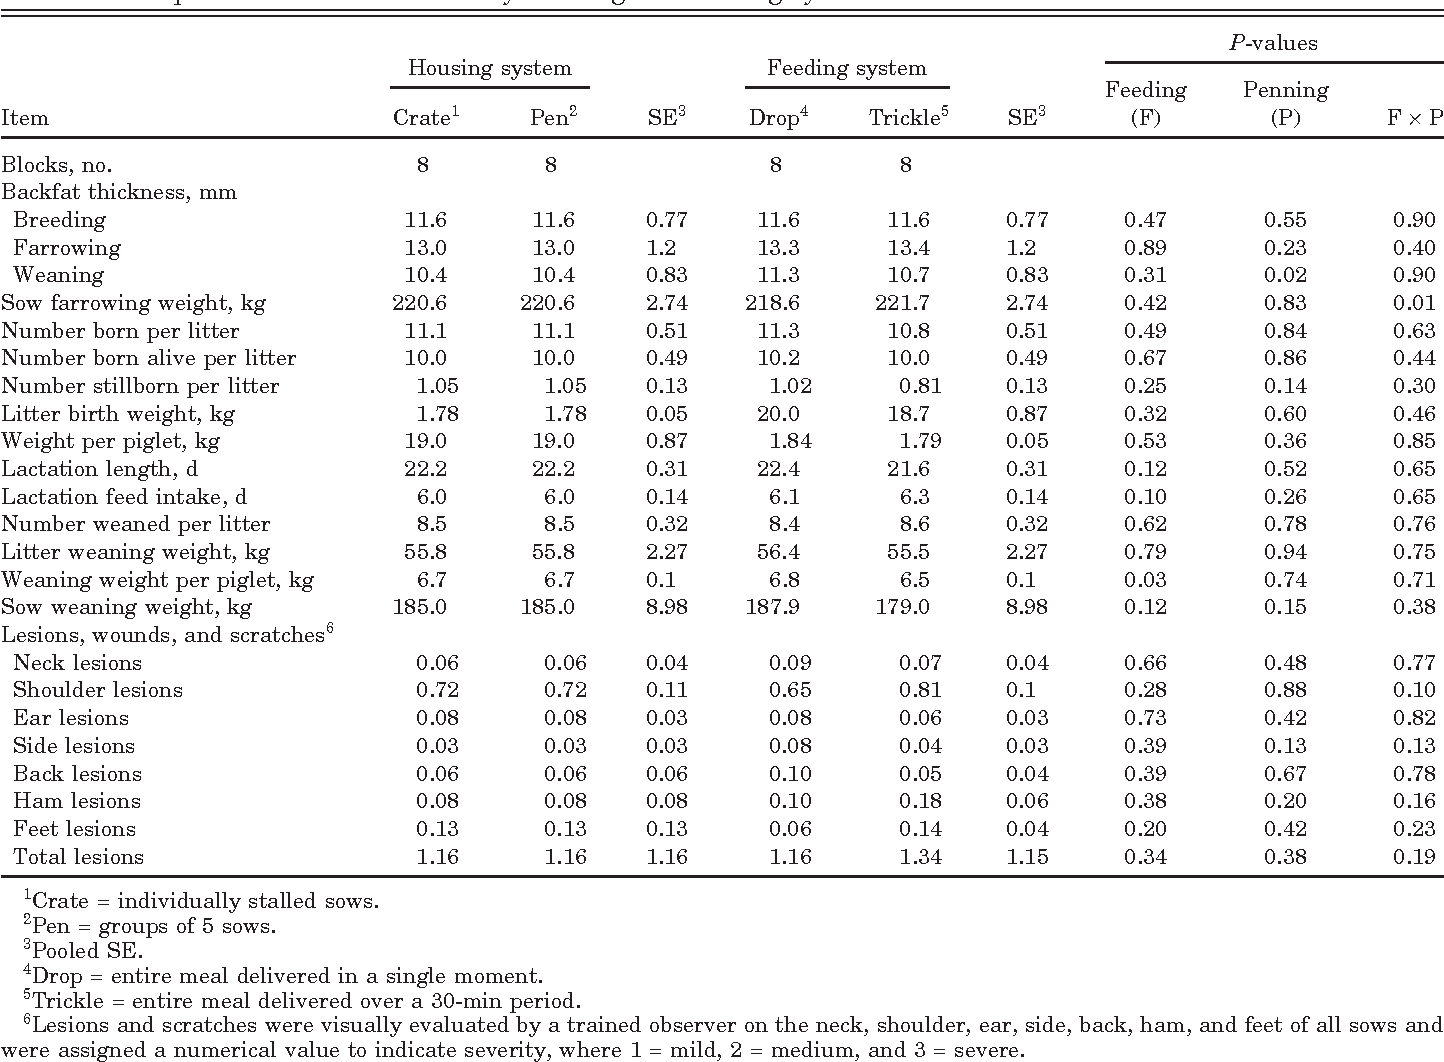 Table 3. Sow performance and lesions by housing and feeding systems